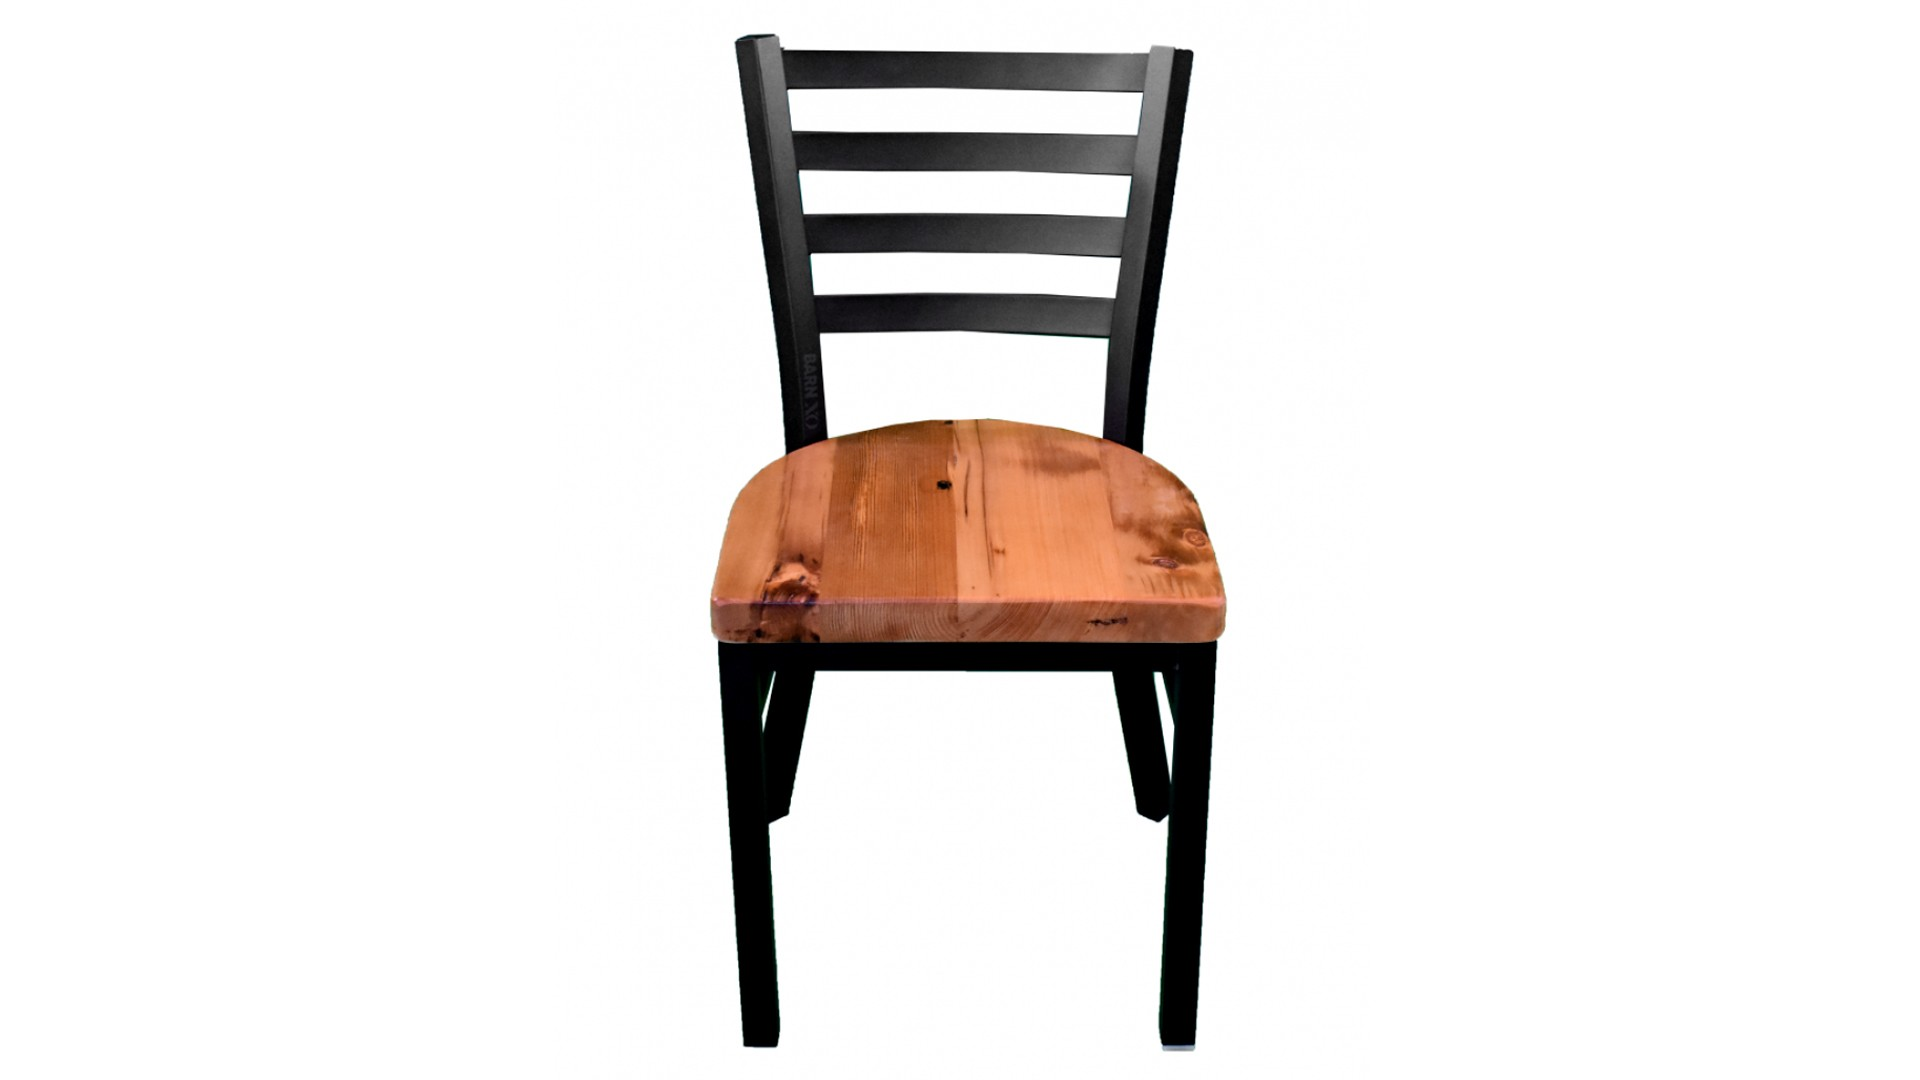 18 Inch Black Ladder Chair